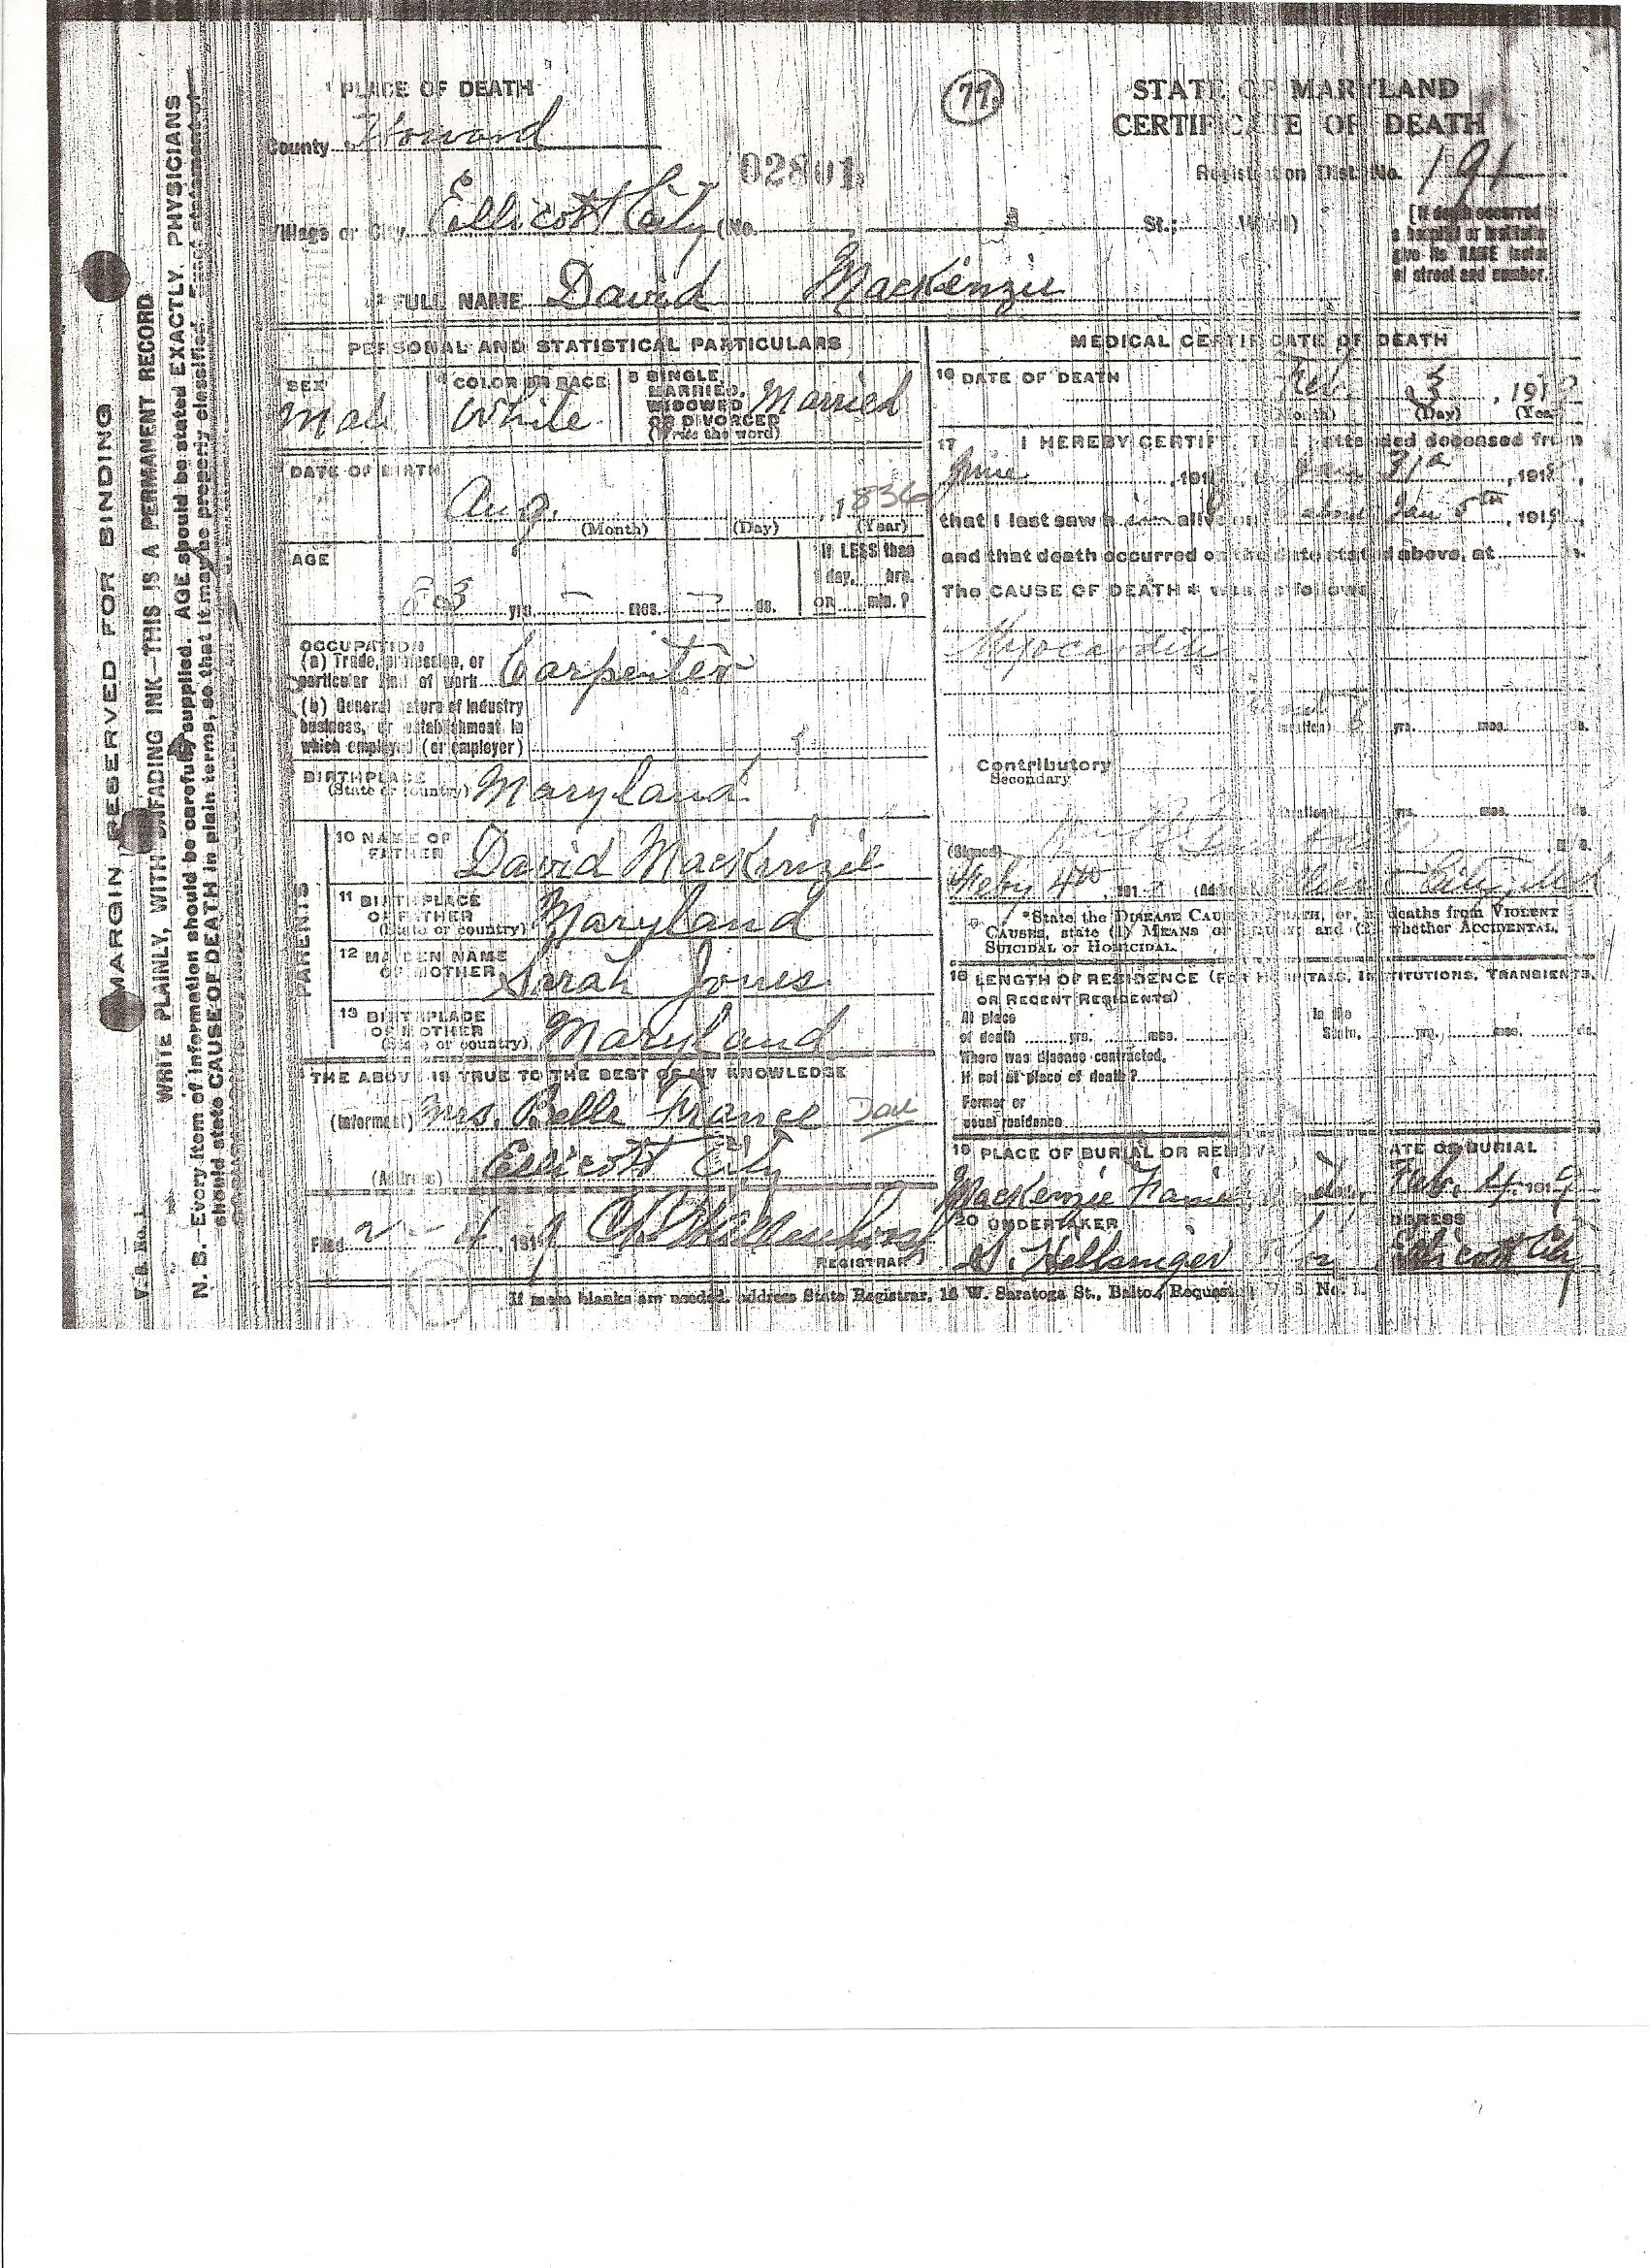 Documents Death Certificate Of David Mackenzie B 1836 The